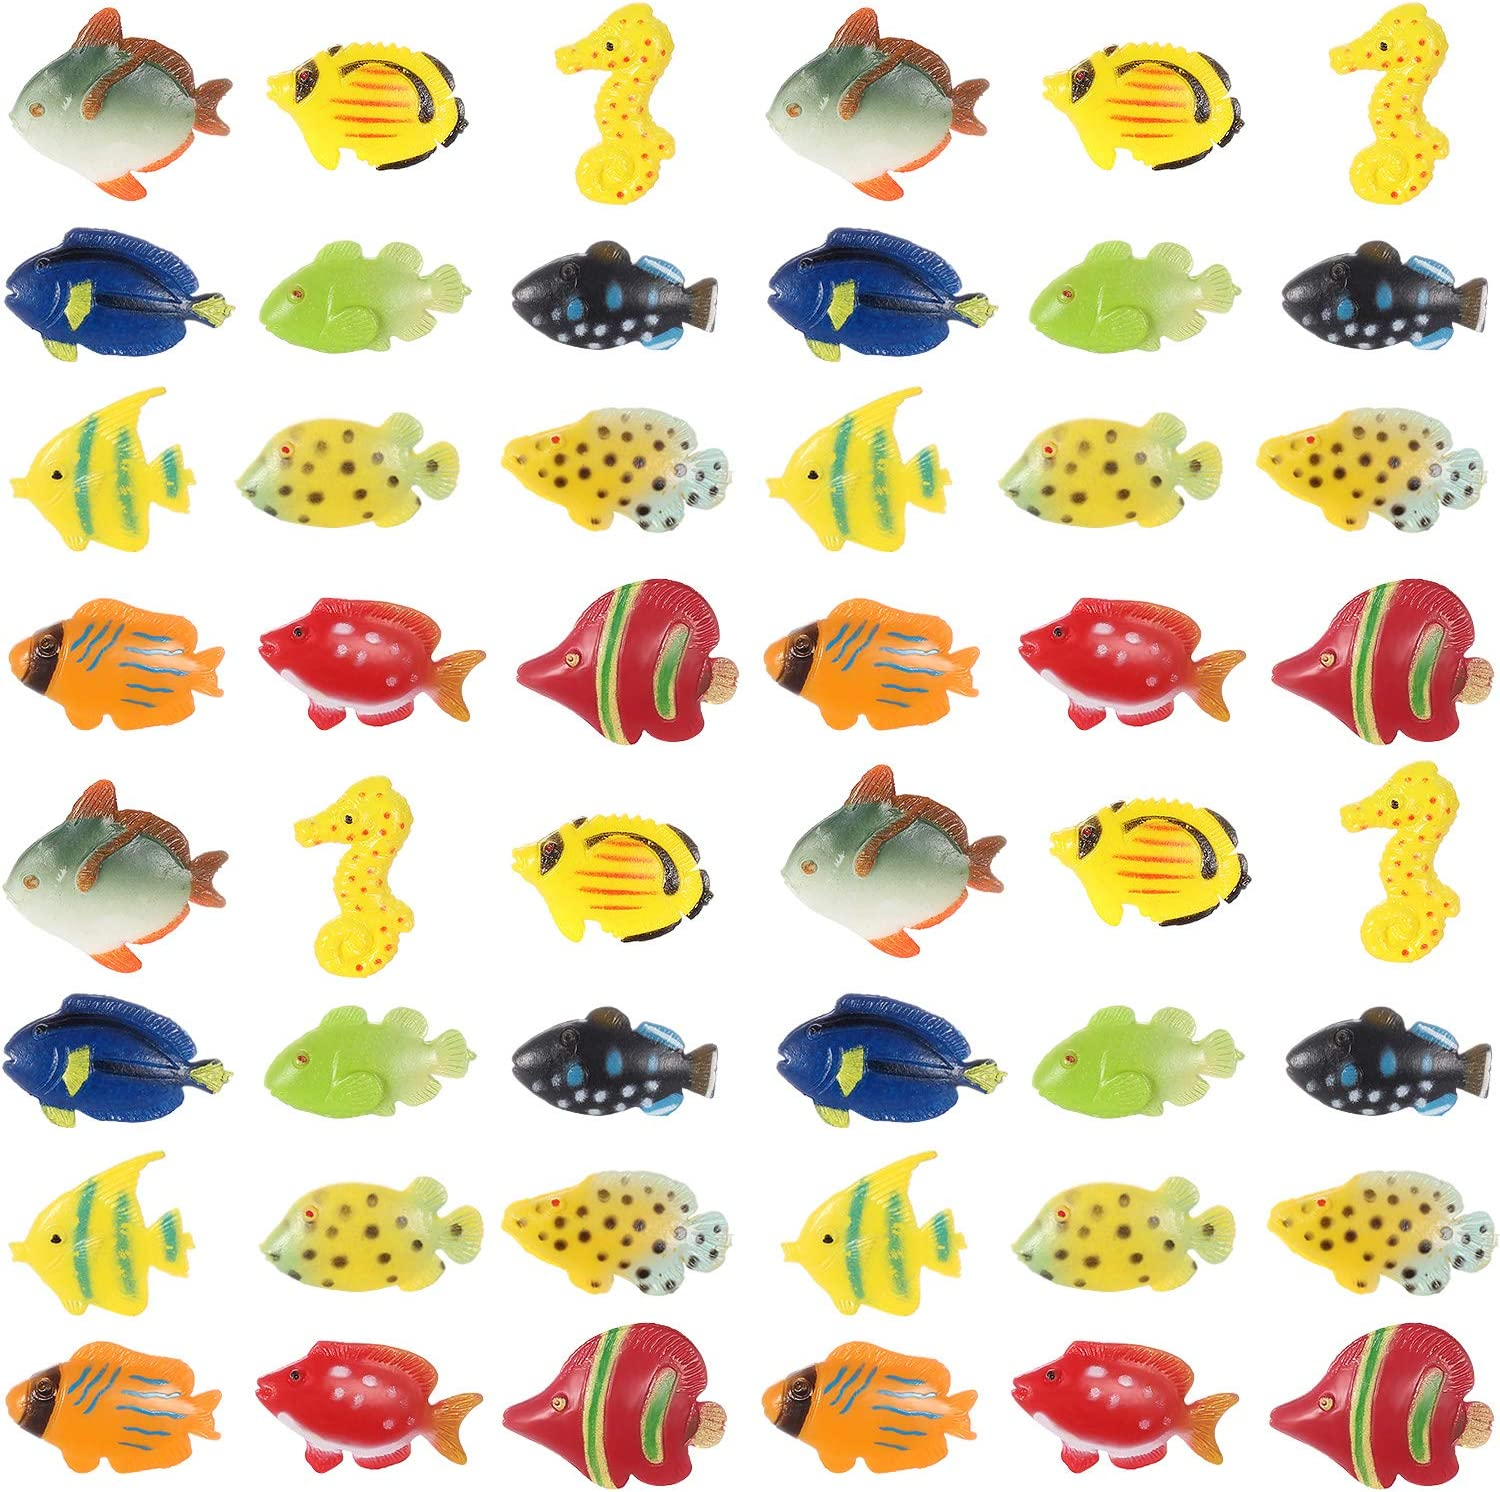 Boao 48 Pieces Tropical Fish Figure Play Set, Tropical Fish Party Favors, Assorted Plastic Fish Toys, Sea Animals Toys for Kids,1.5 Inch Long